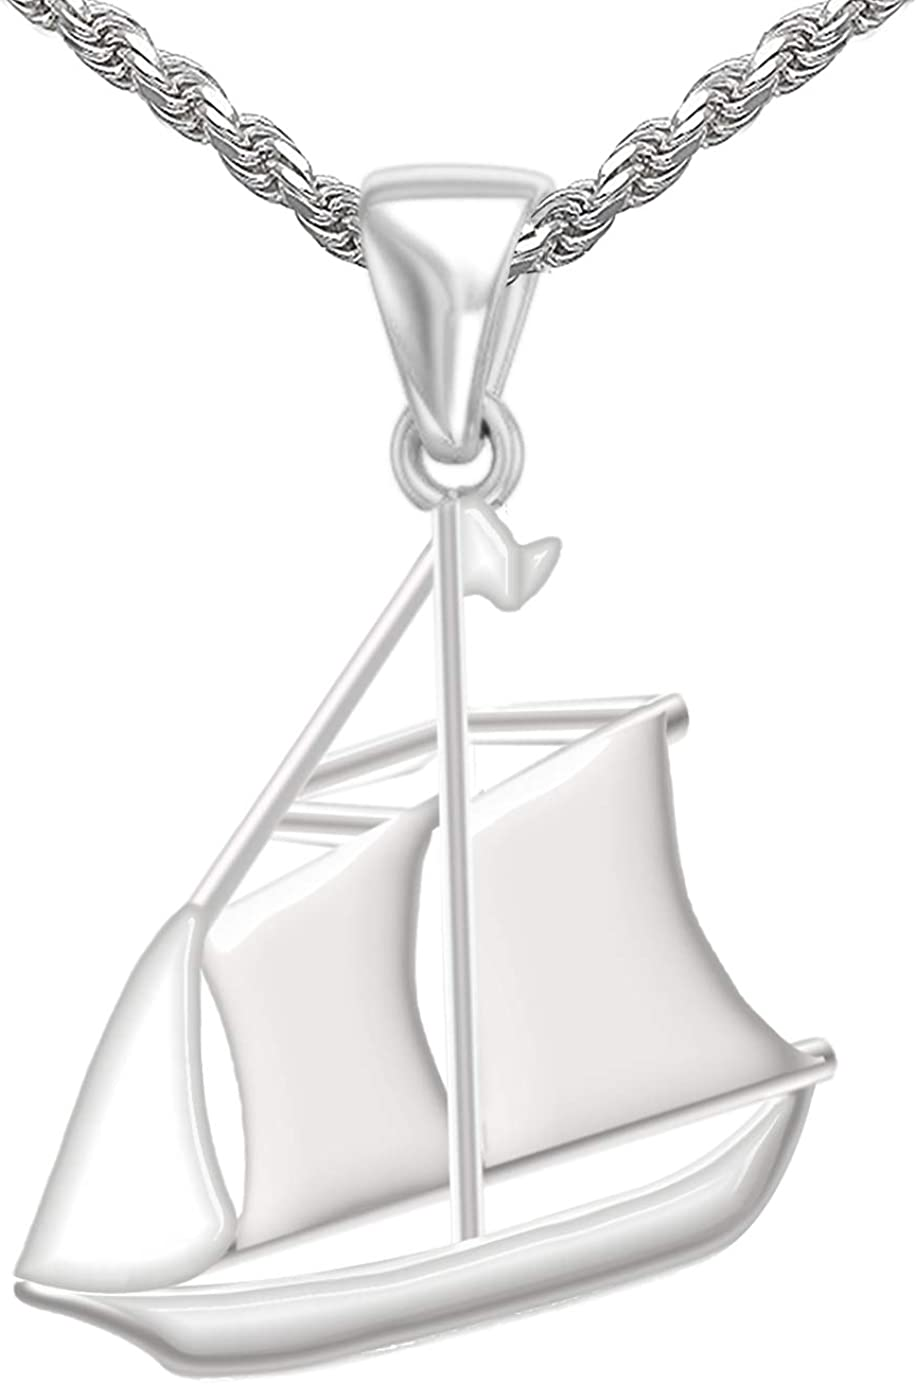 US Jewels And Gems Mens 1 1//8in 0.925 Sterling Silver Schooner Sail Boat Aquatic Charm Pendant Necklace